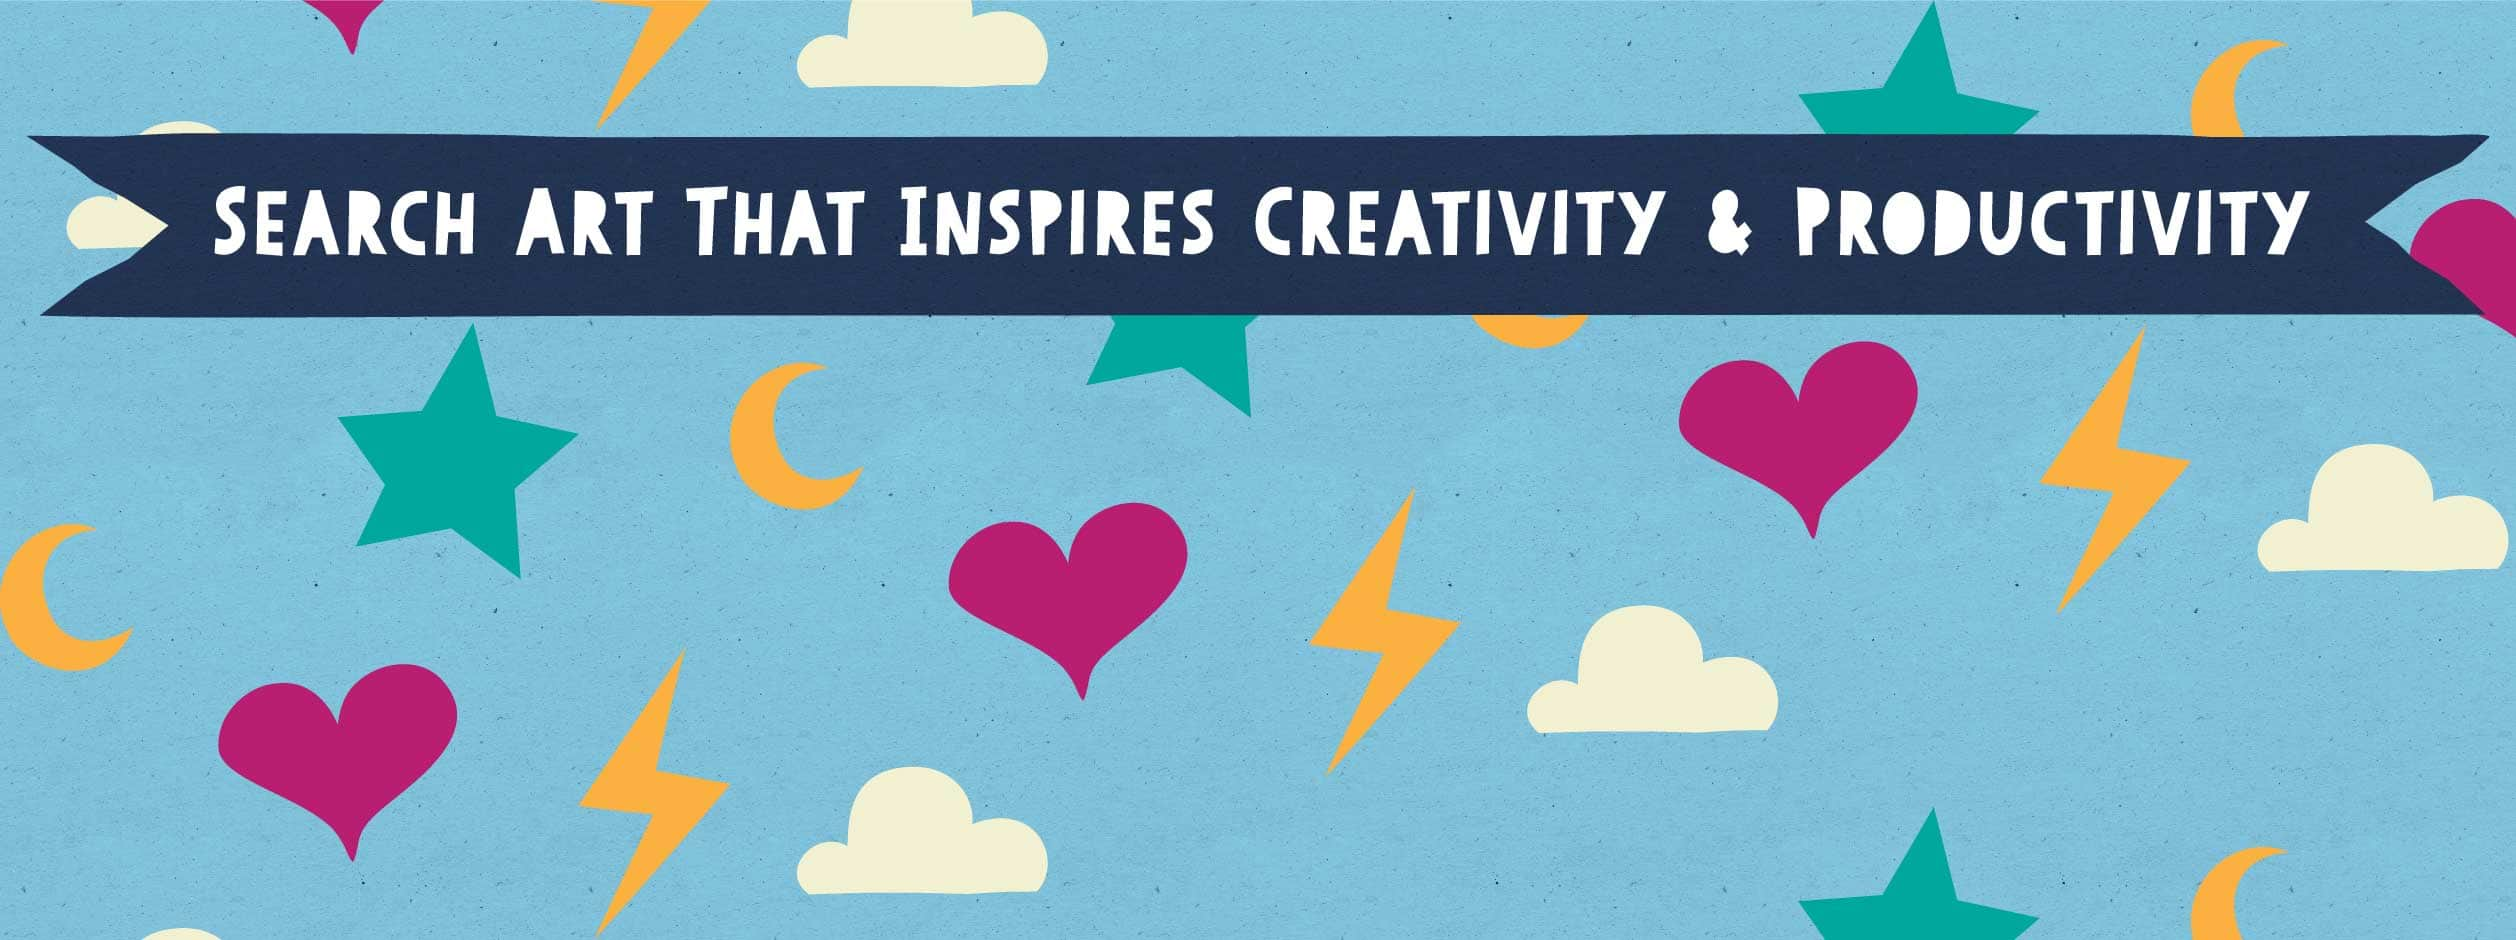 Search art that inspires creativity and productivity